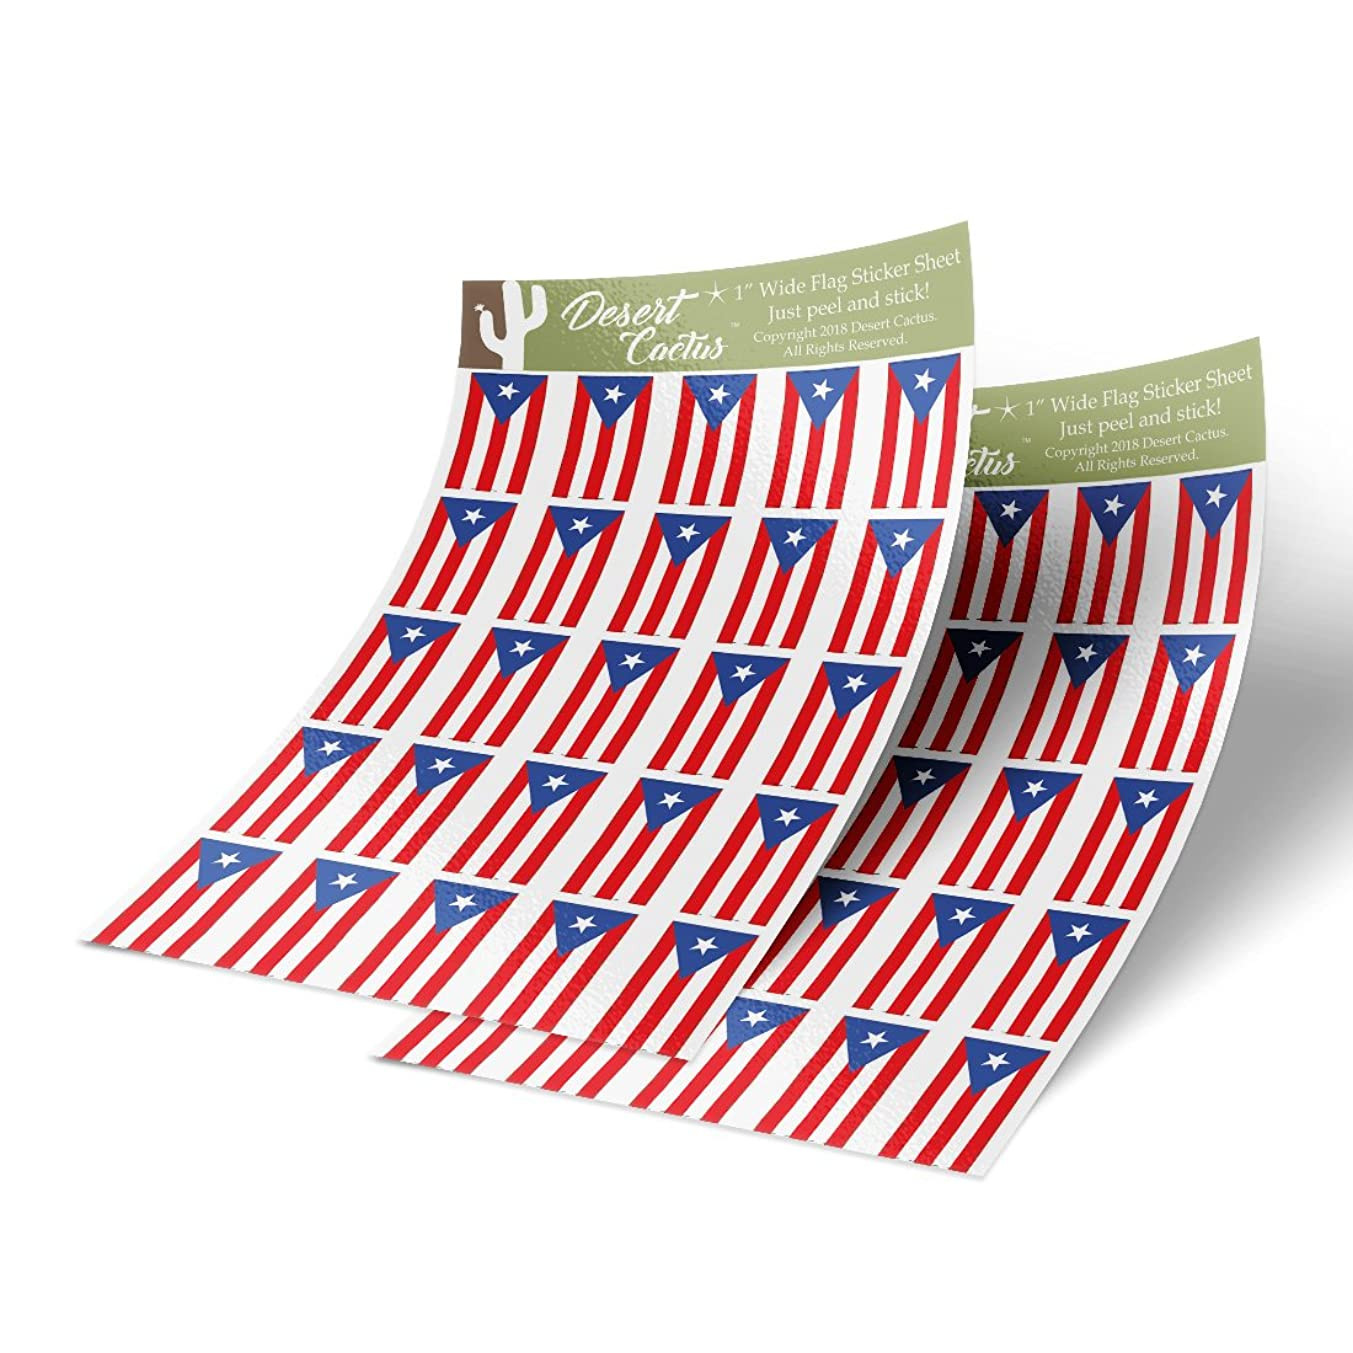 Puerto Rico State Flag Sticker Decal 1 Inch Rectangle Two Sheets 50 Total Pieces Kids Logo Scrapbook Car Vinyl Window Bumper Laptop R